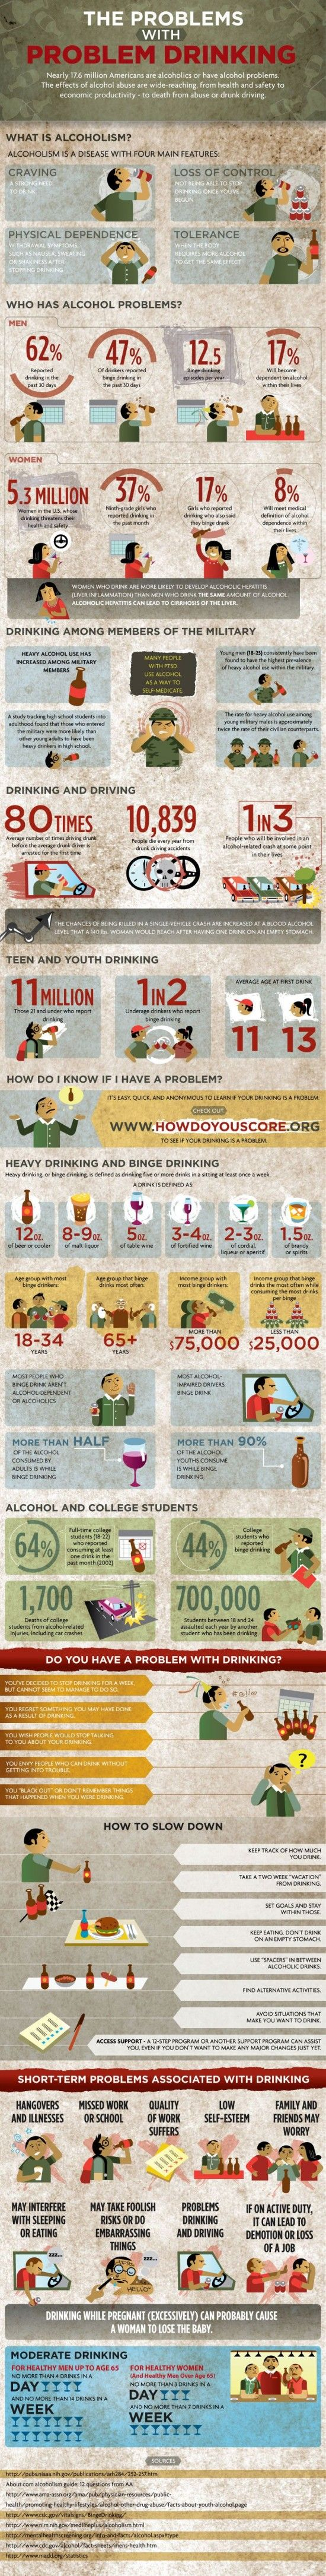 "Have you ever wondered, ""Am I an alcoholic?"" Do you sometimes wonder if you're overly dependent on alcohol, or have a problem with binge drinking? The Infographic below covers useful information on alcohol abuse; including alcoholism symptoms, binge drinking, military alcohol abuse, youth drinking and more."